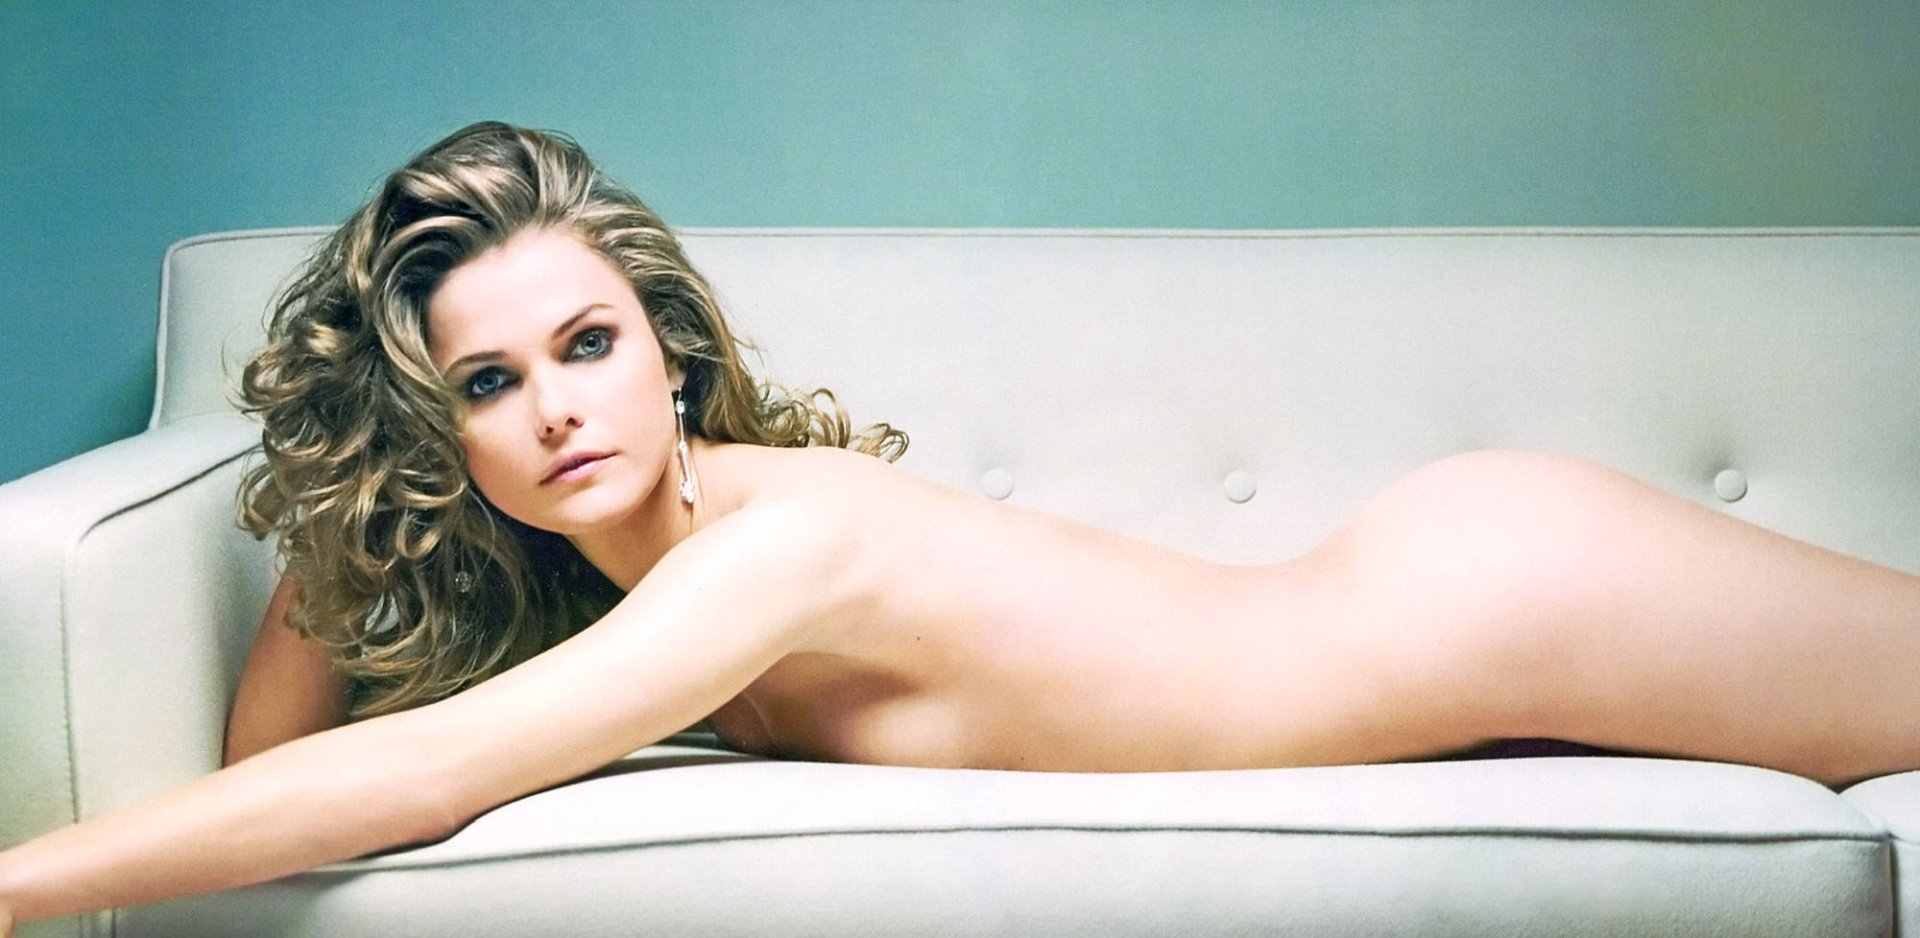 Naked pictures of keri russell